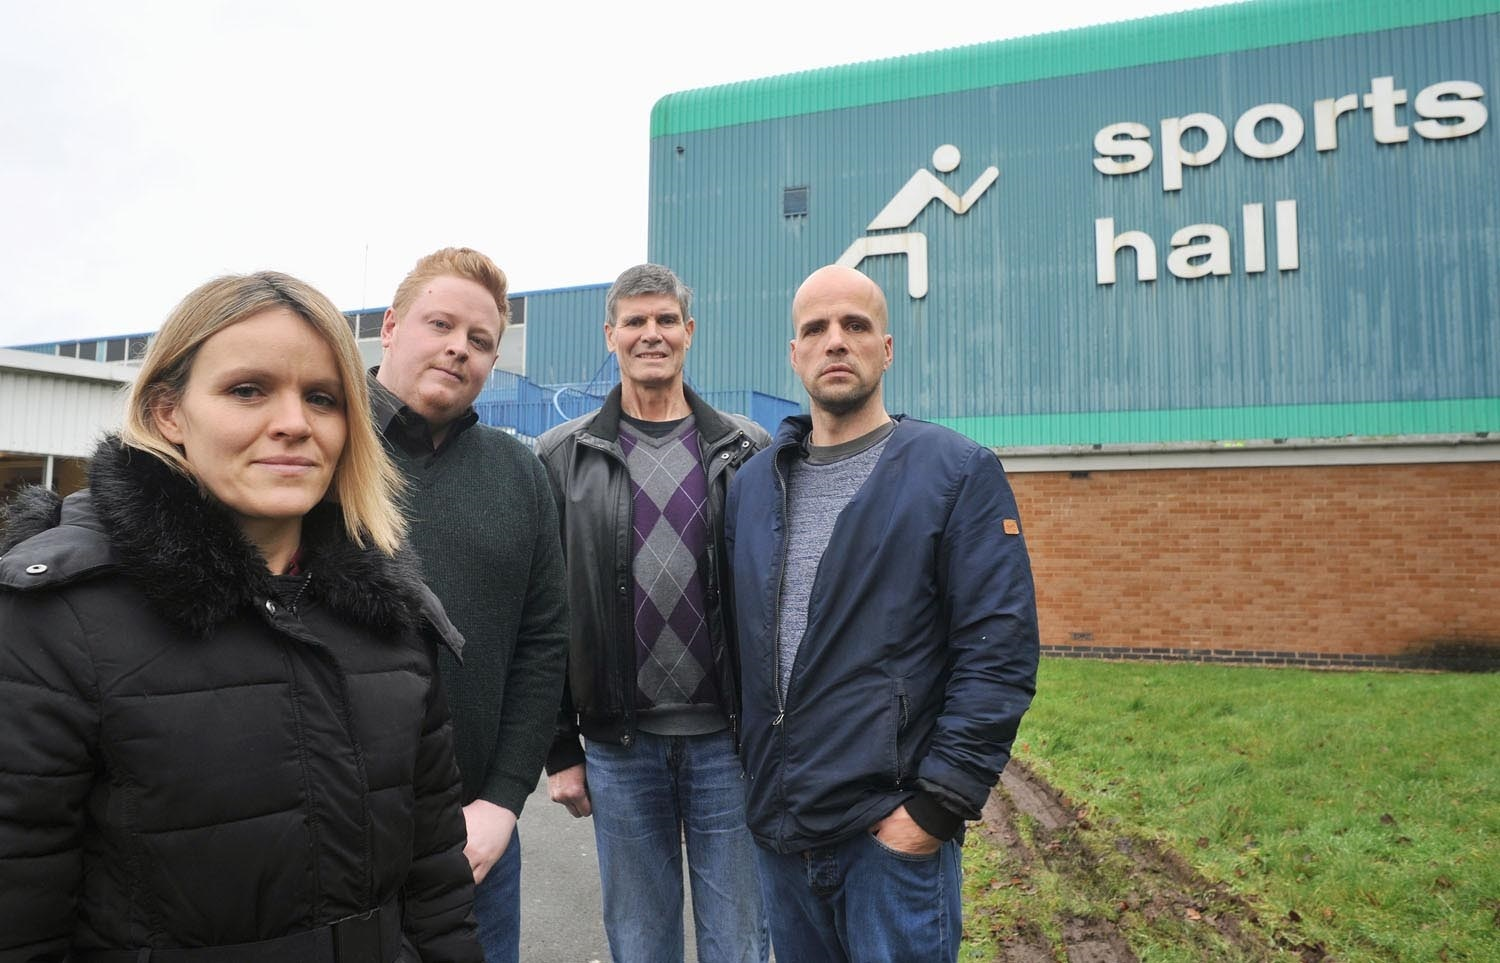 Save Our Sports Hall campaigners Louise Humphries, Cllr Chris Bloore, Peter Rendell and Wayne Humphries